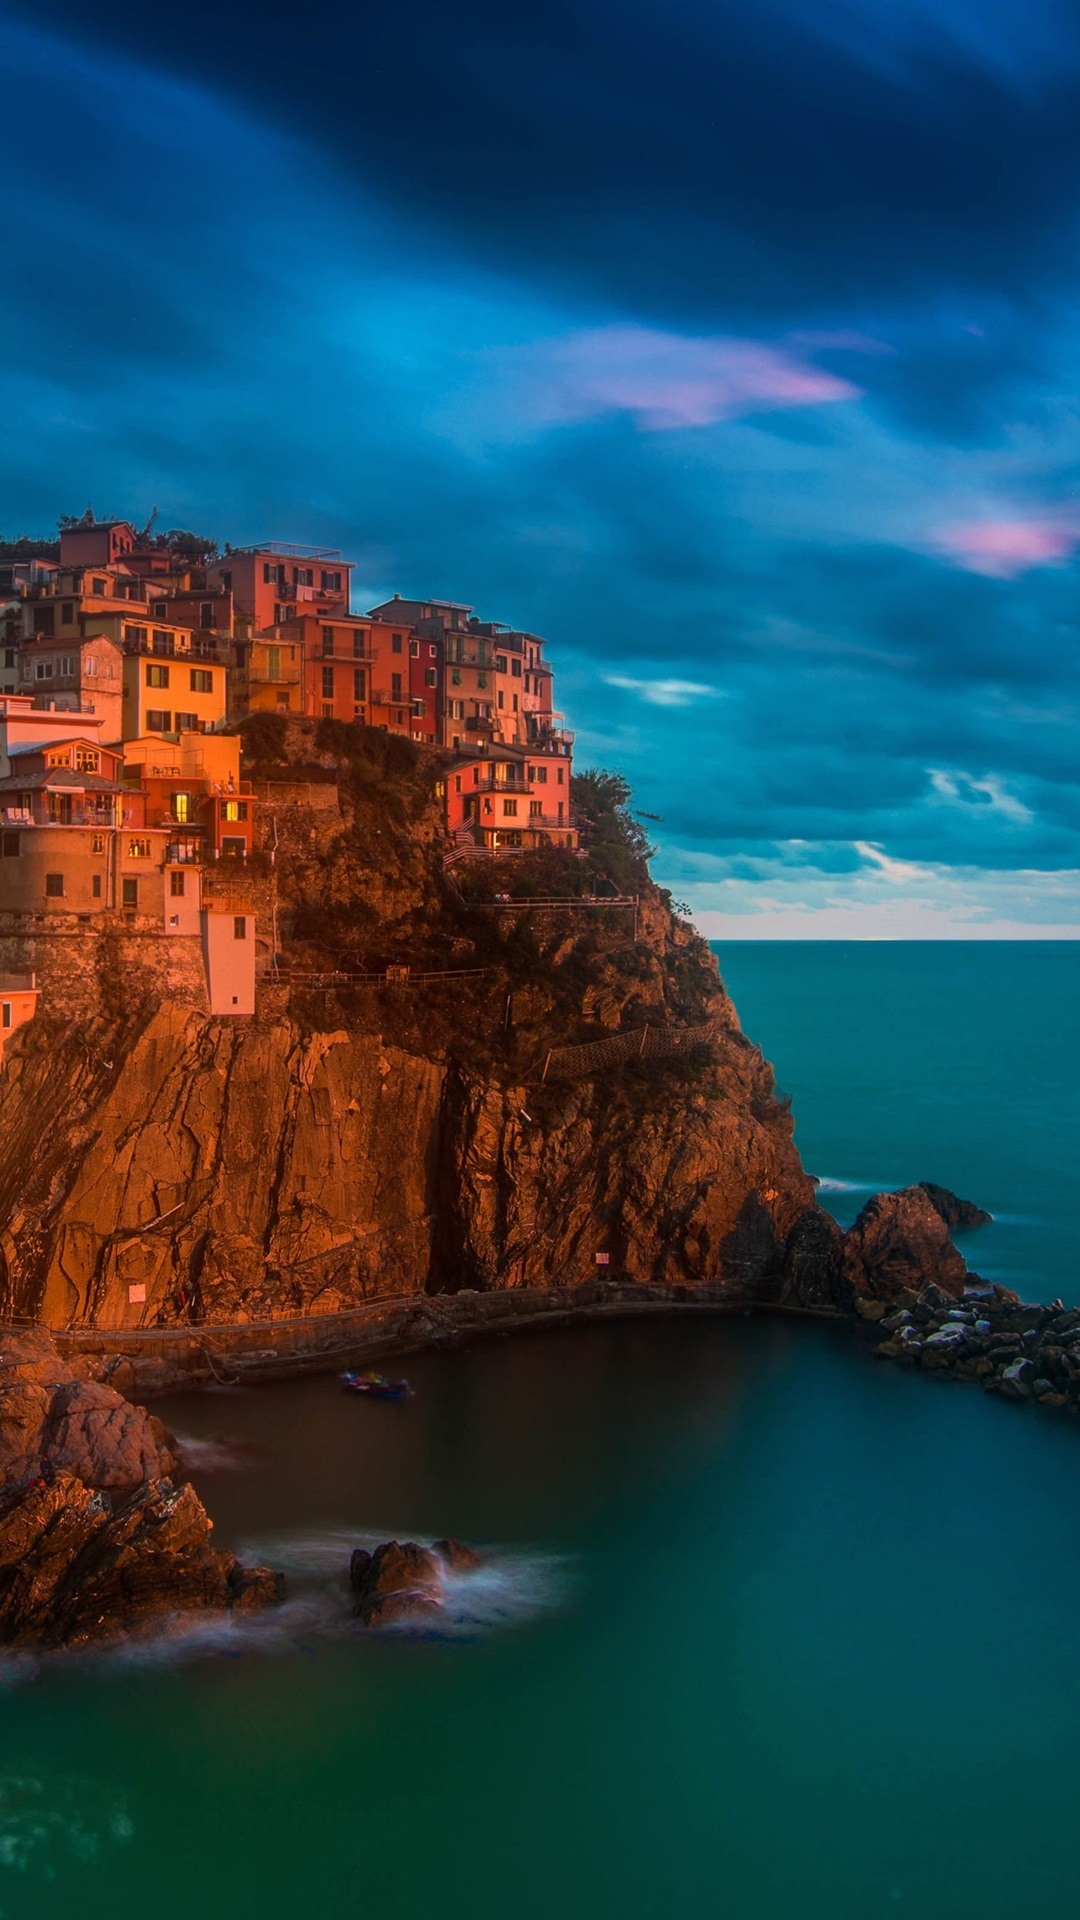 Italy Manarola Cinque Terre Sea Night Lights 1080x1920